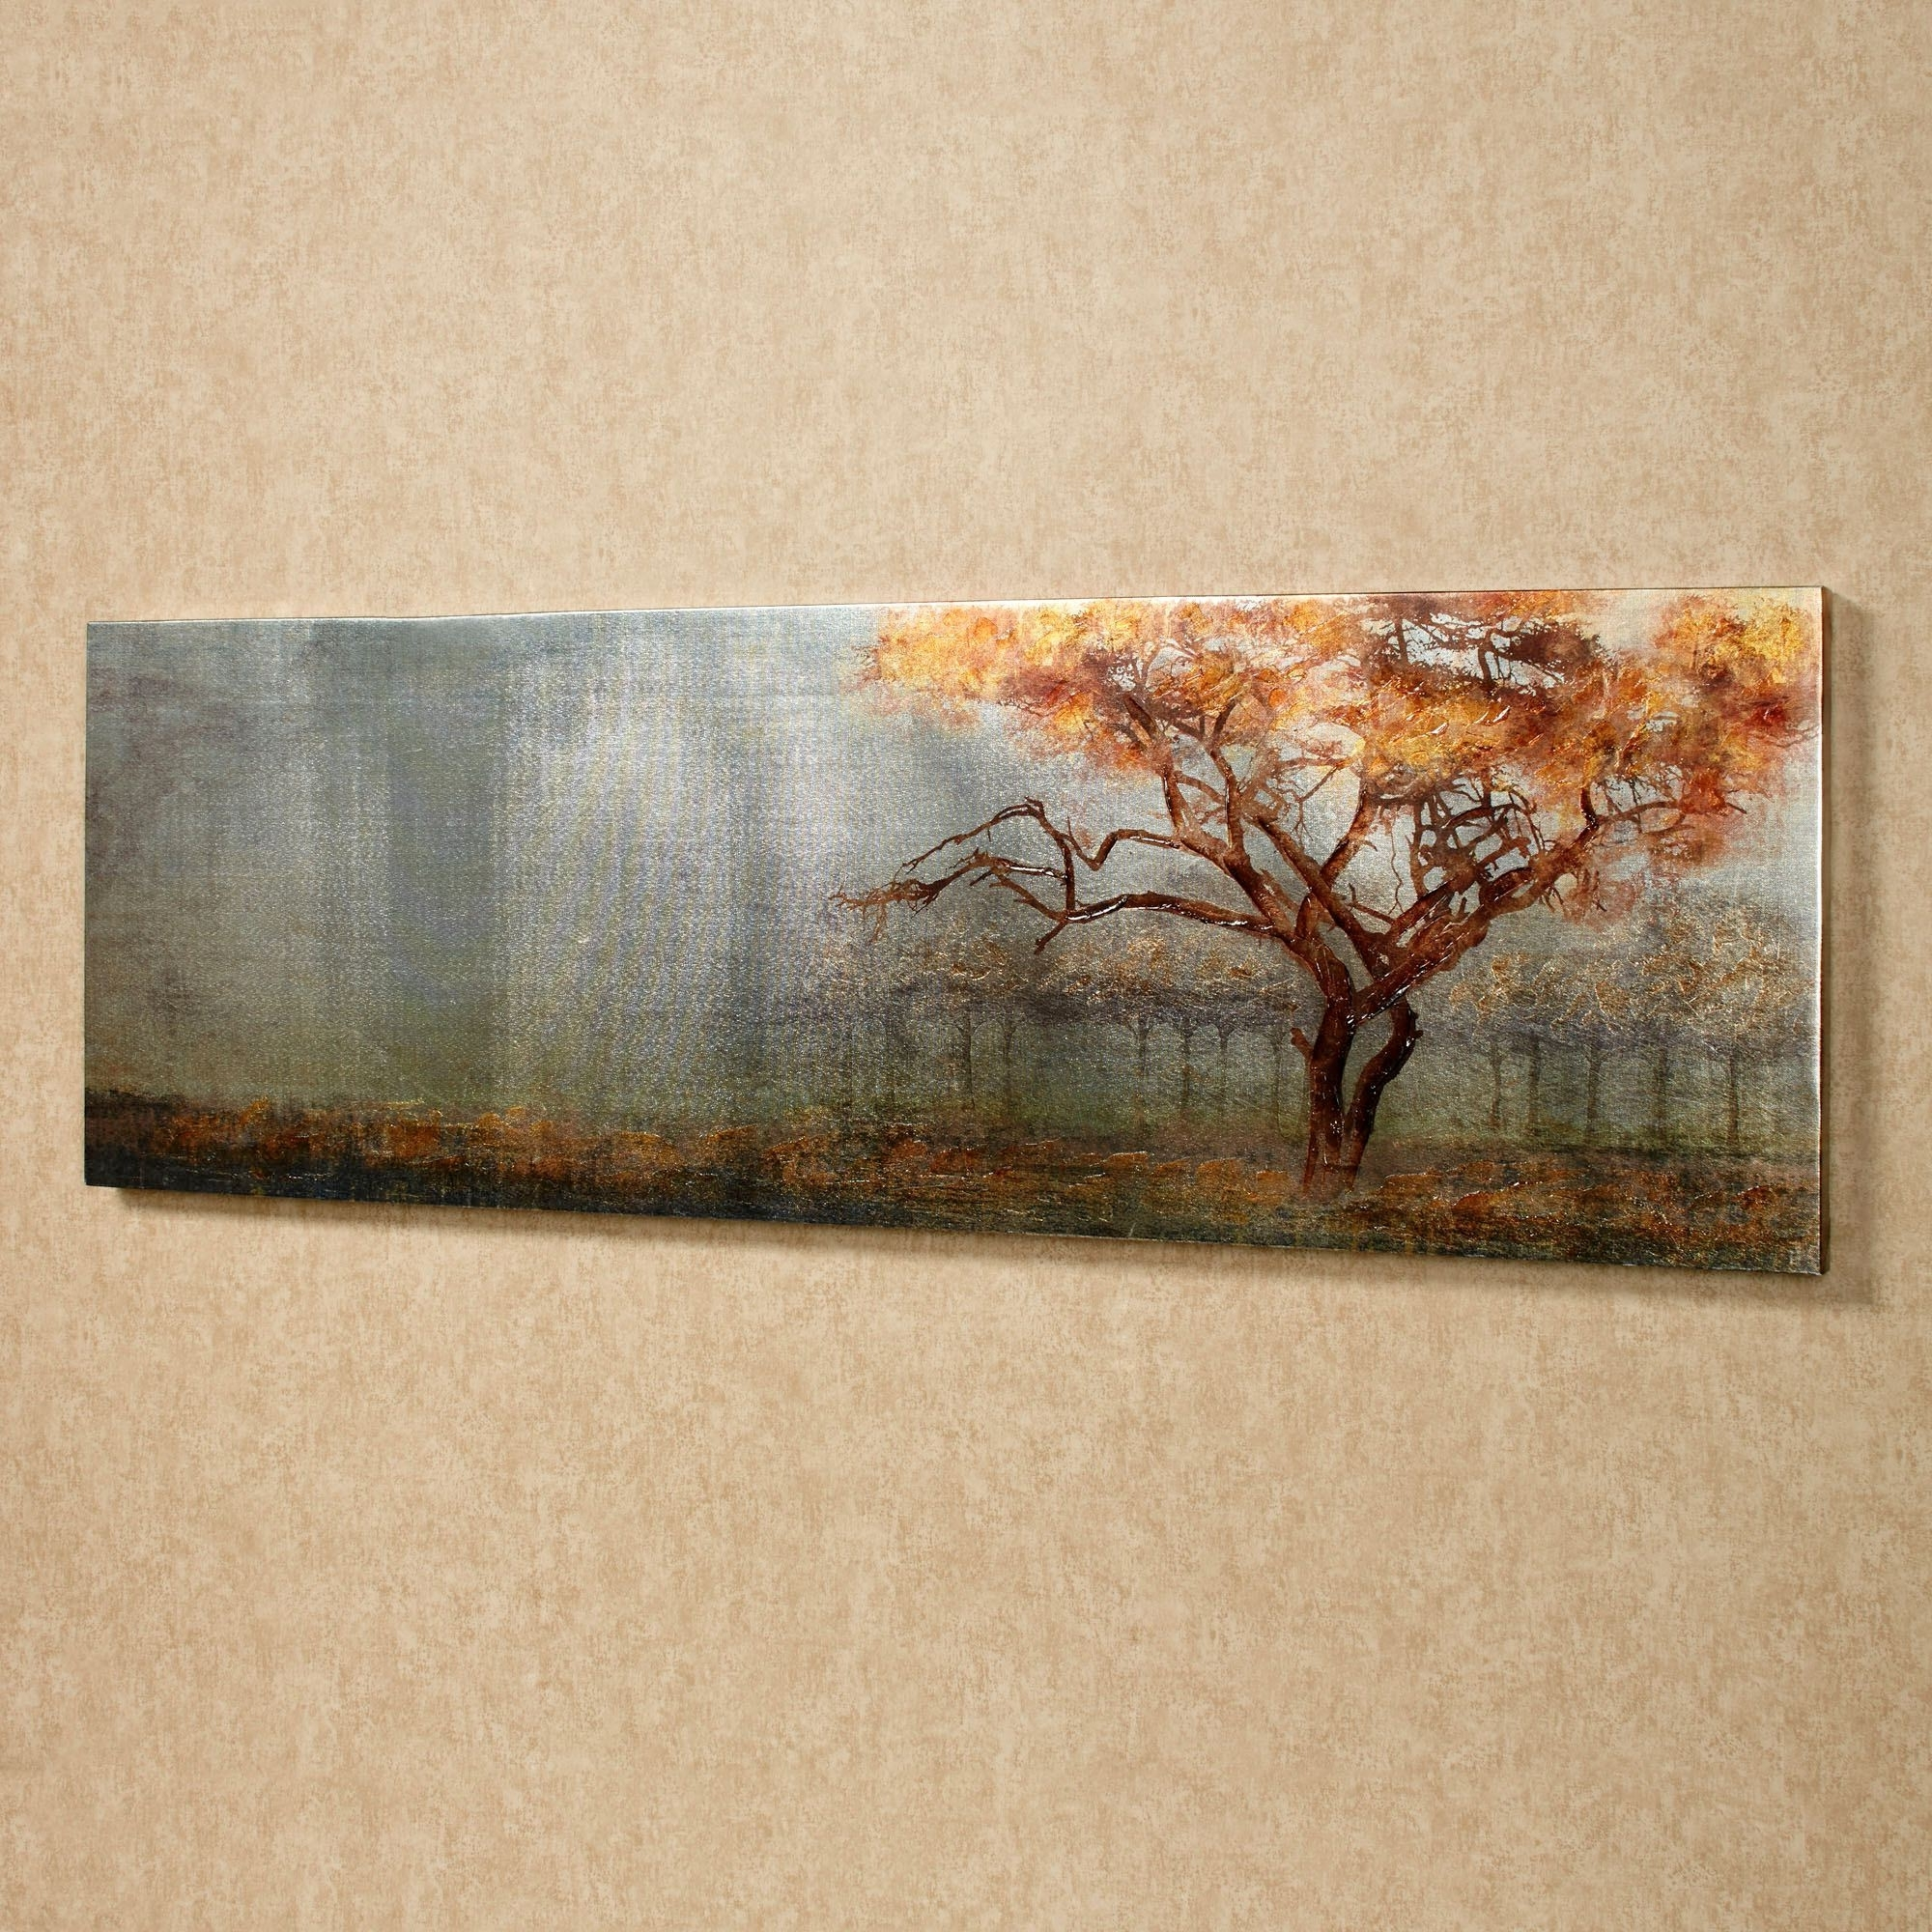 Safari Canvas Wall Art In Latest Serengeti Tree Canvas Wall Art (View 3 of 15)